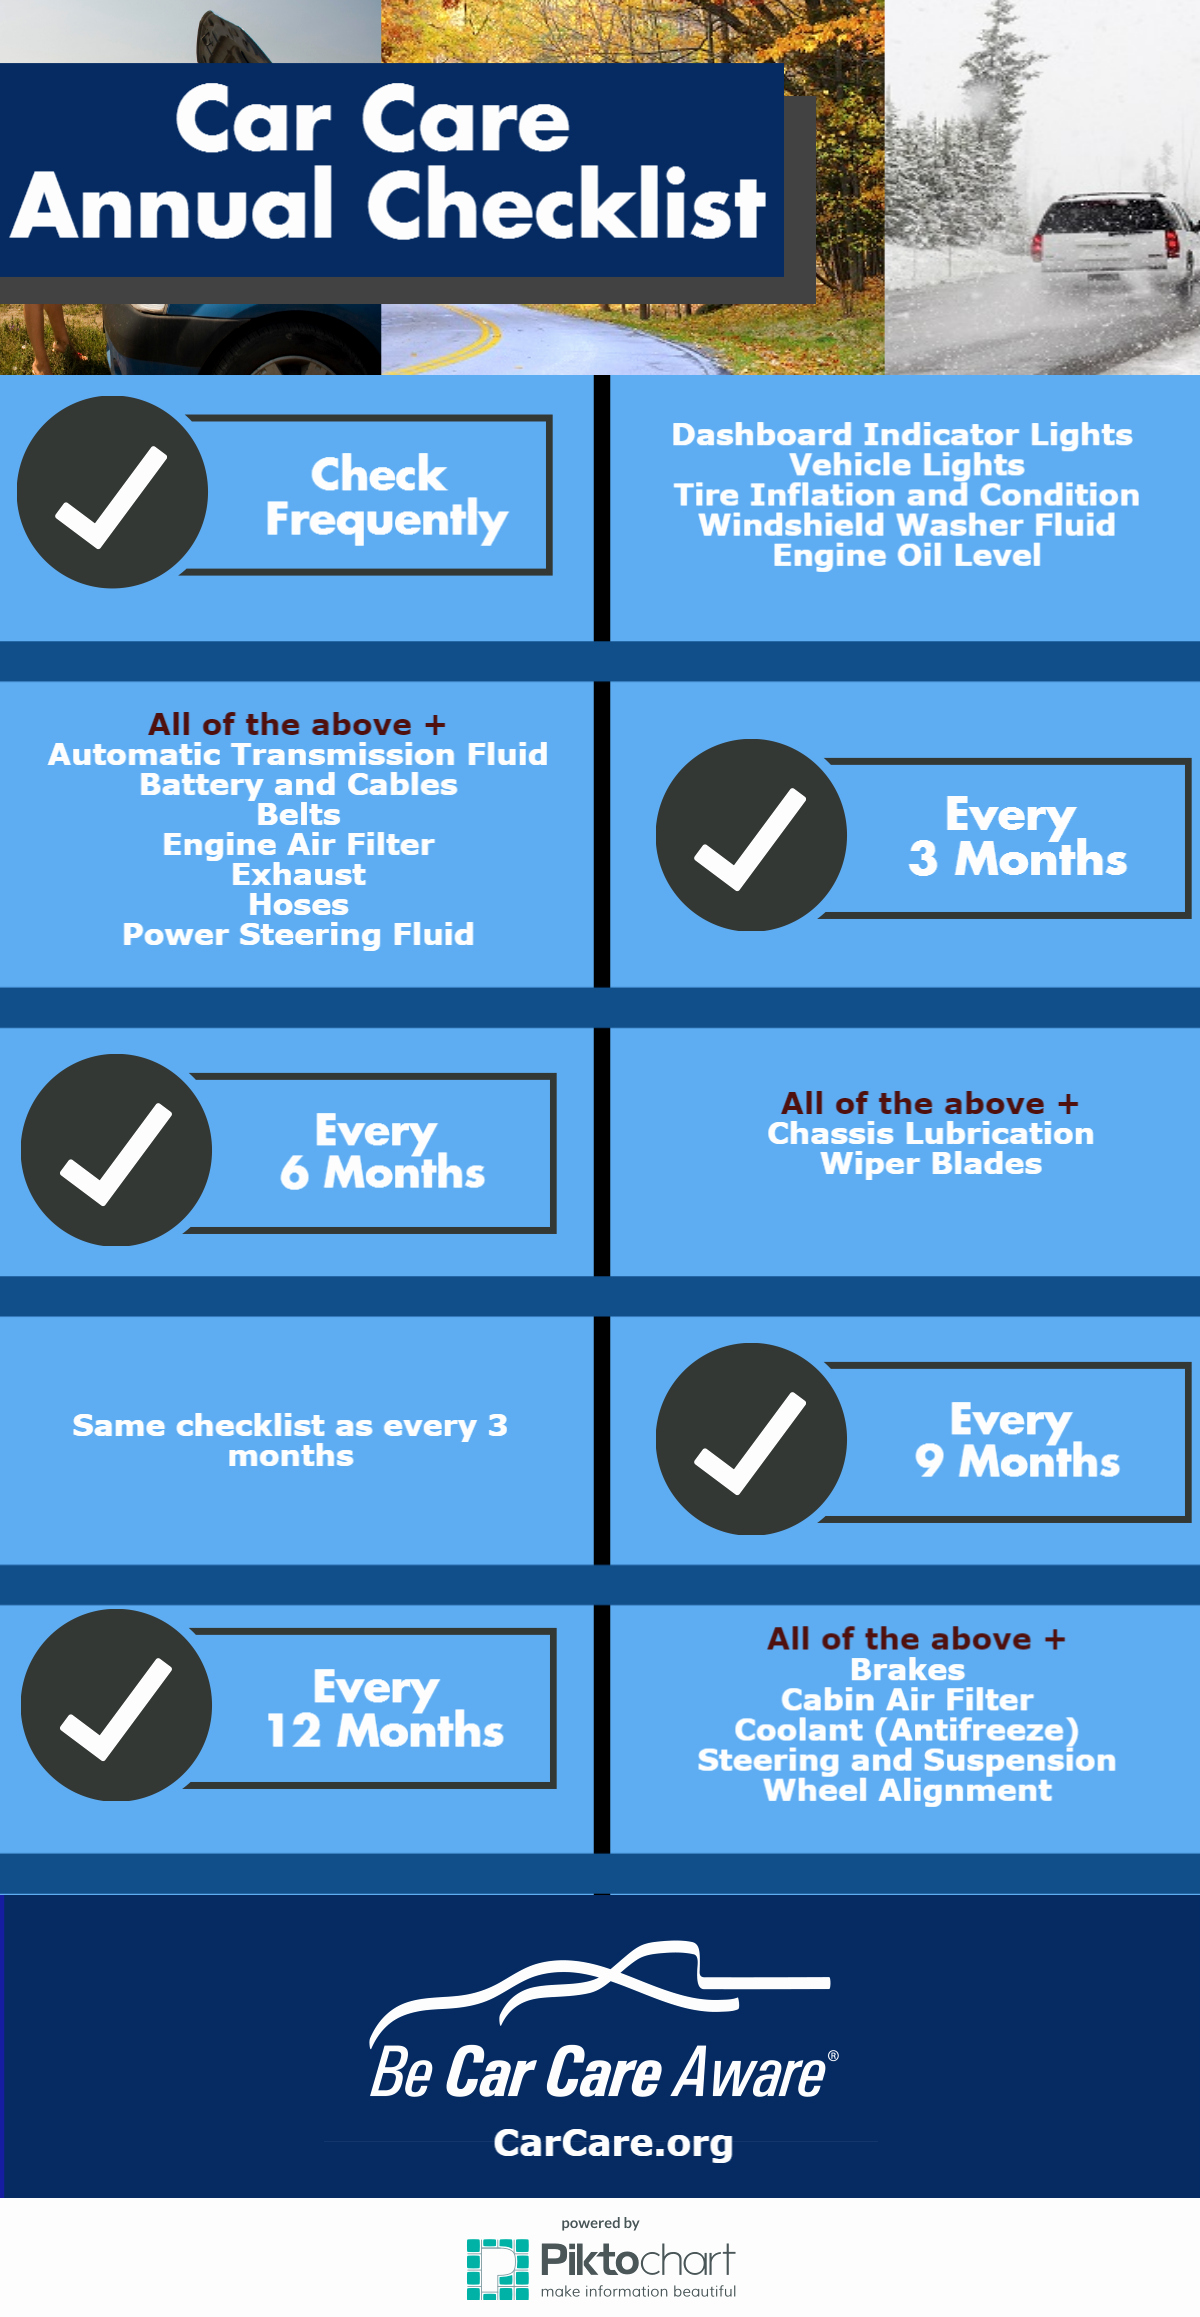 Daily Vehicle Maintenance Checklist Luxury Infographic A Handy Maintenance Checklist for National Car Care Month — and Beyond